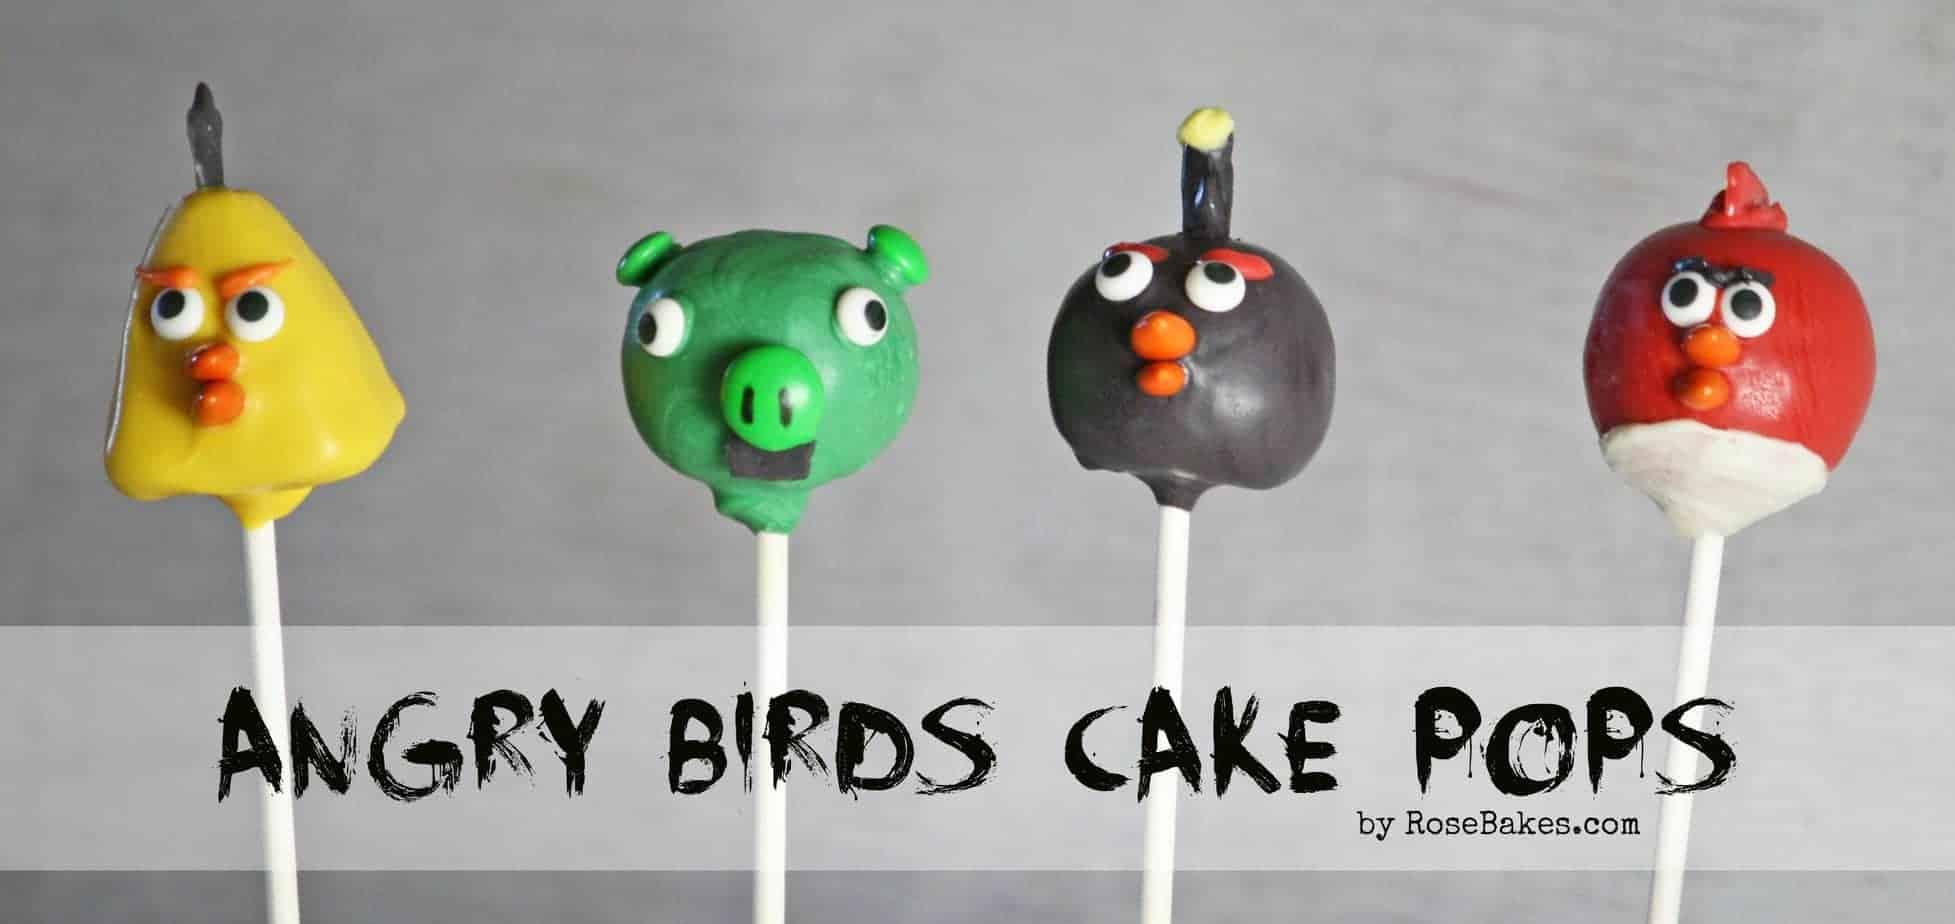 How To Make Angry Birds Cake Pops